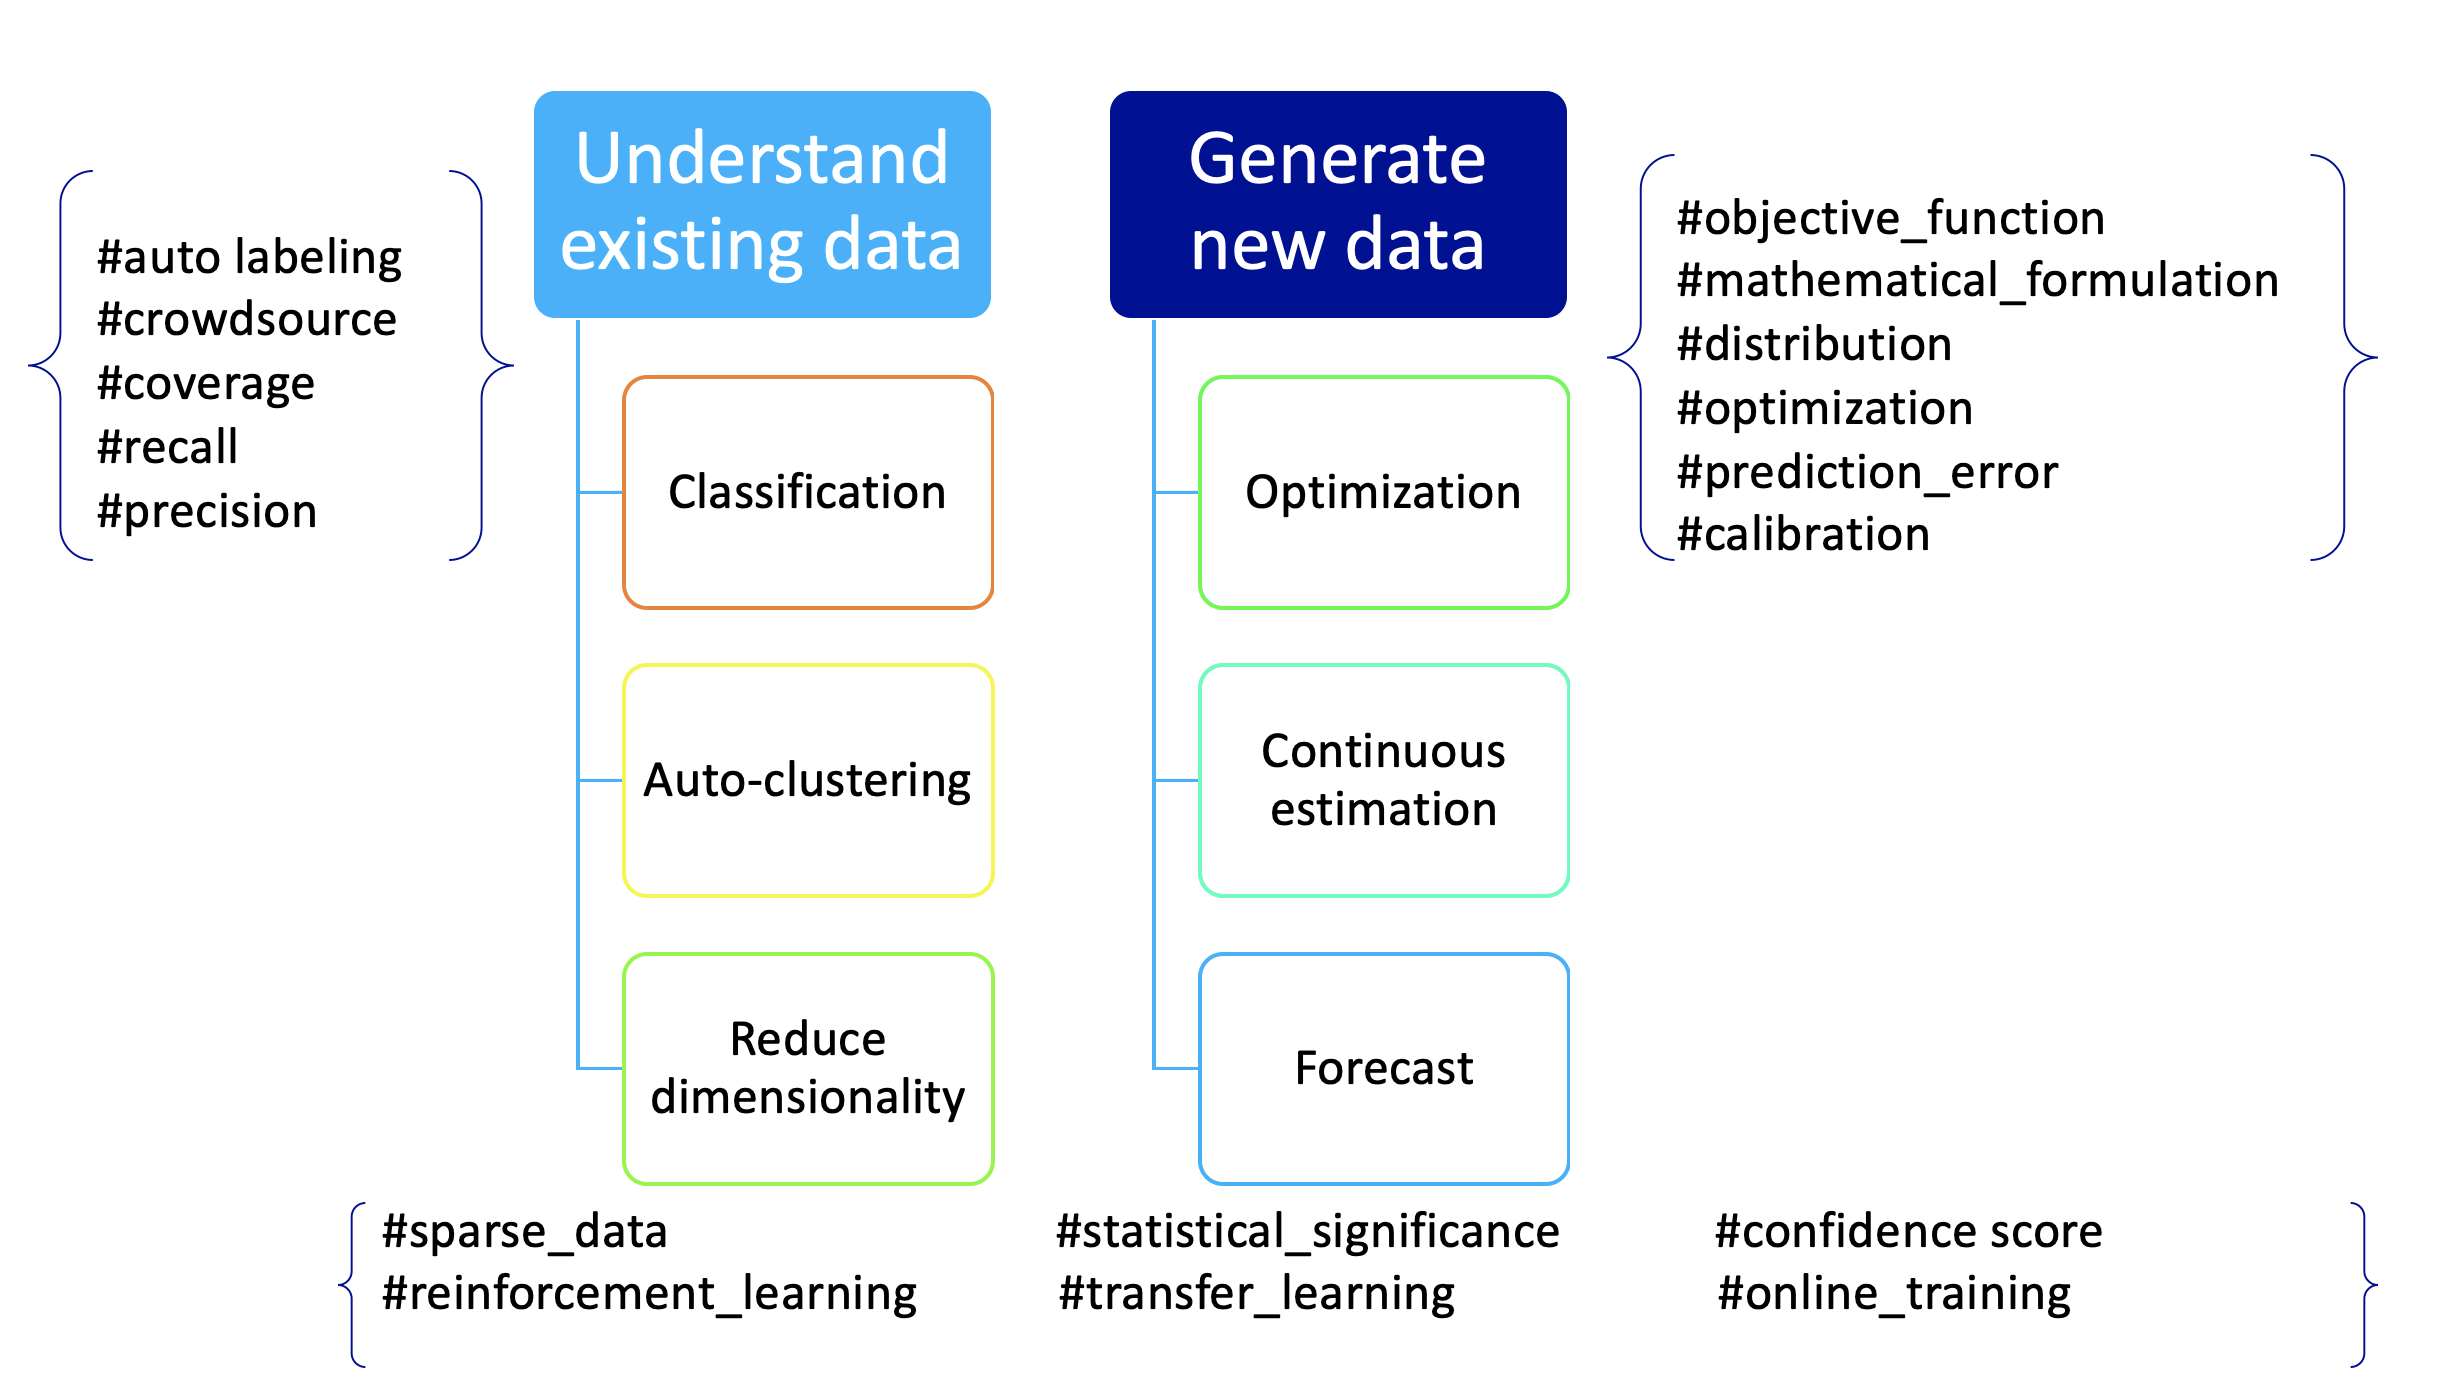 Existing data: Classify, Auto-cluster, Reduce dimensionality. New data: Optimization, Continuous estimation, Forecast.